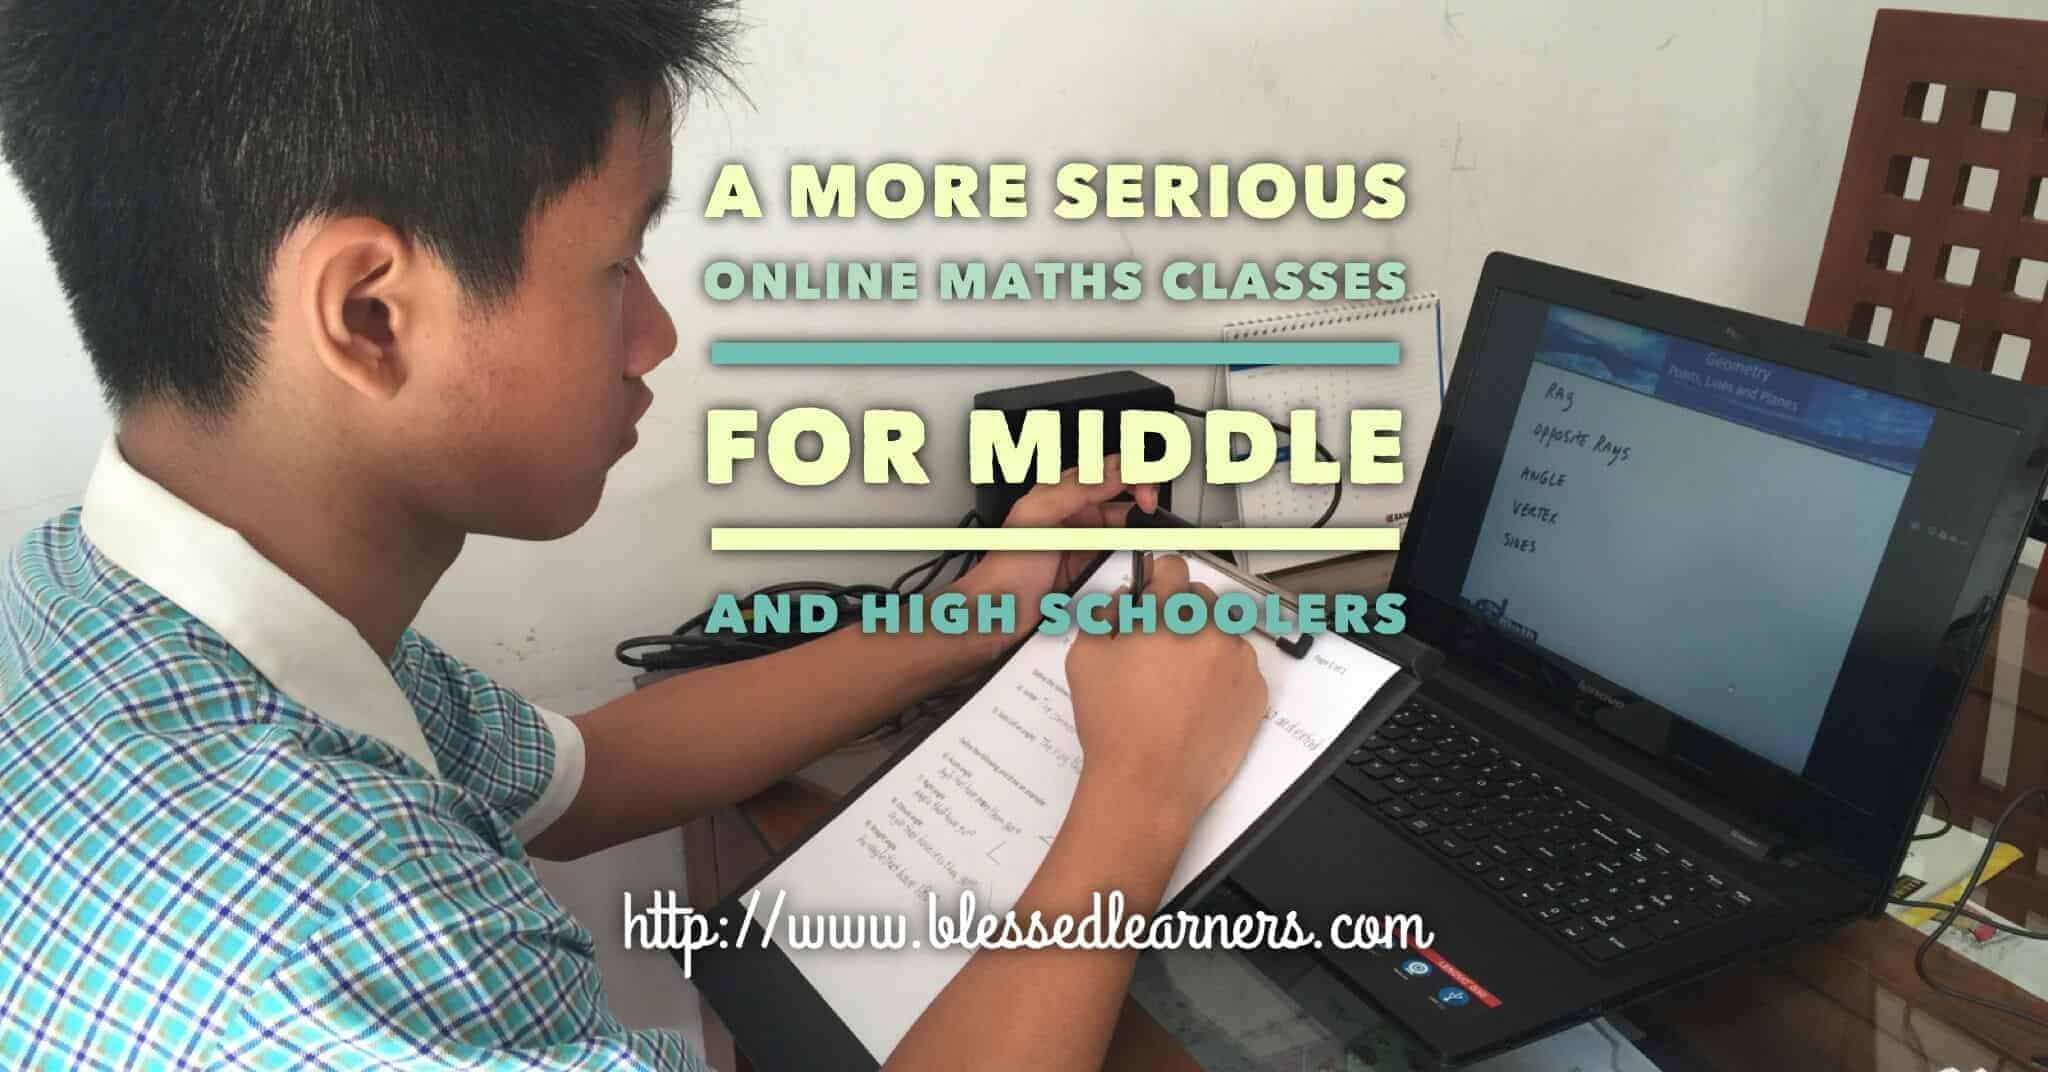 A More Serious Online Maths Classes for Middle and High Schoolers ...